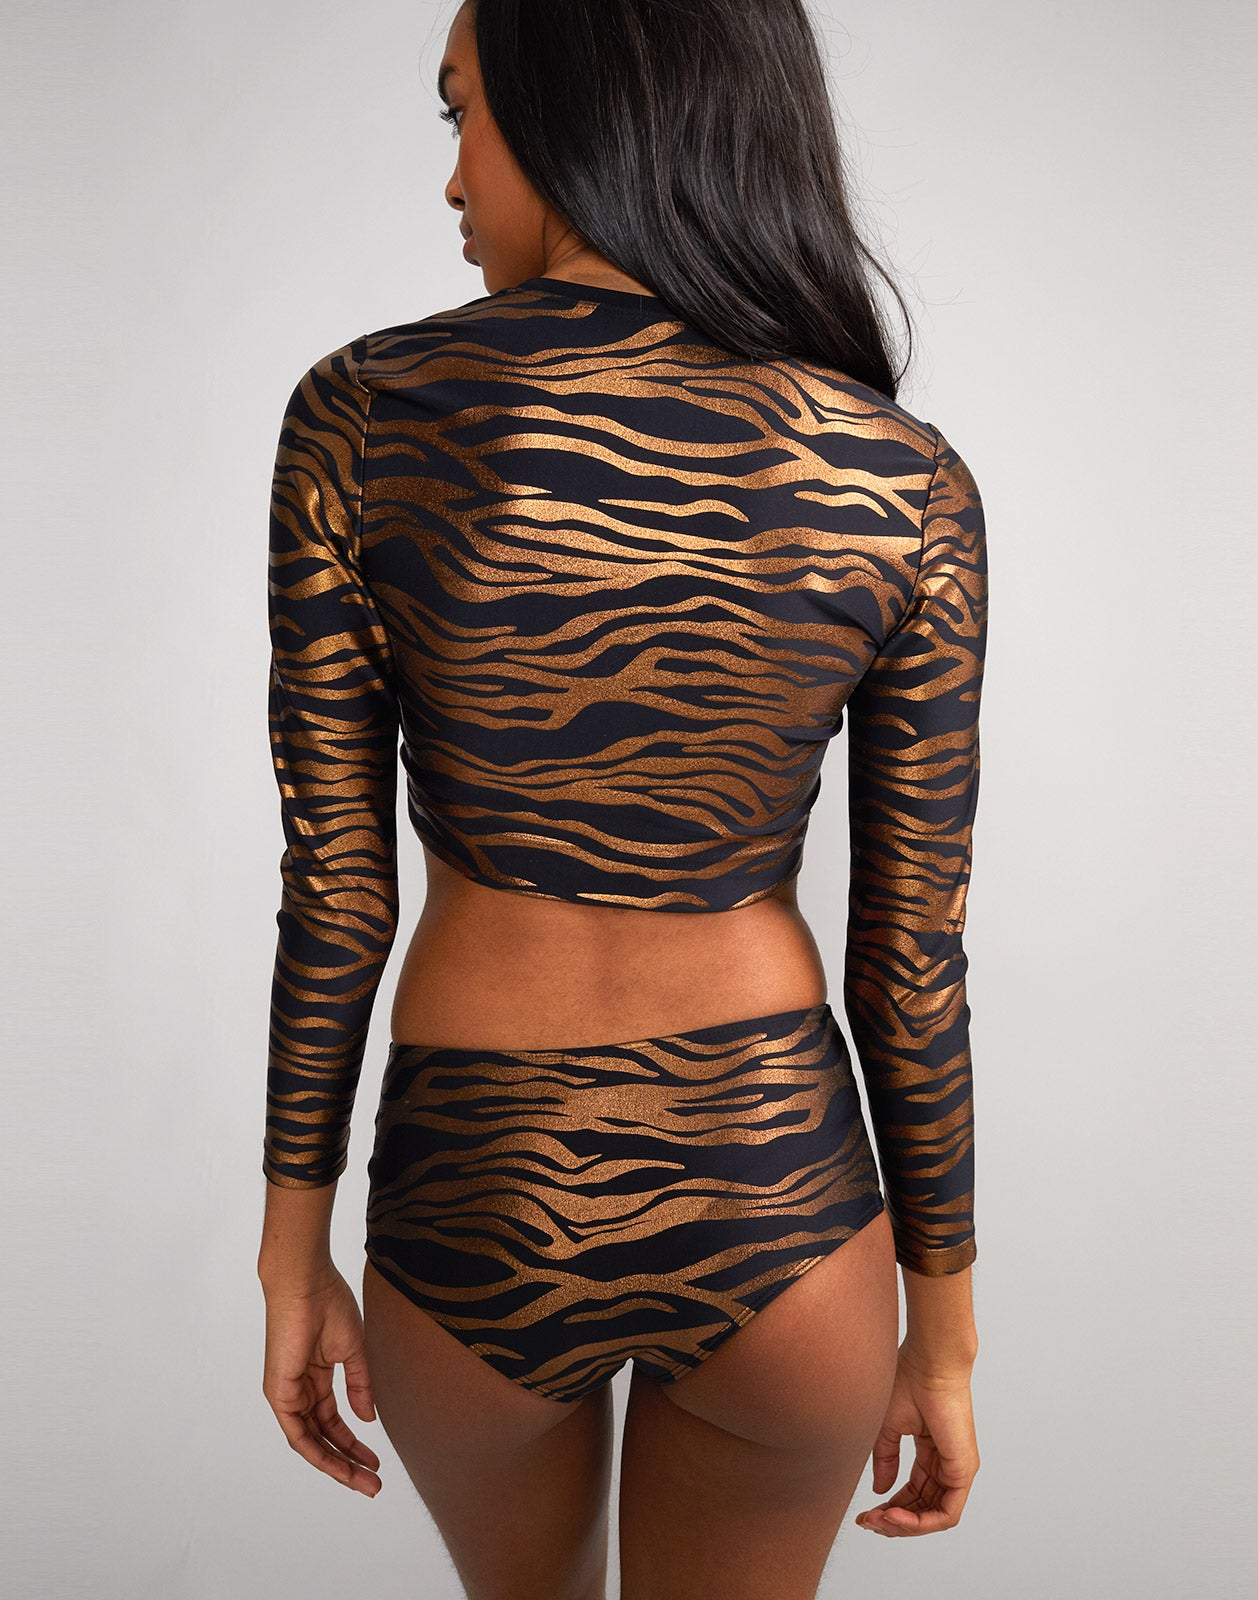 Back view of zebra sasha crop rashguard